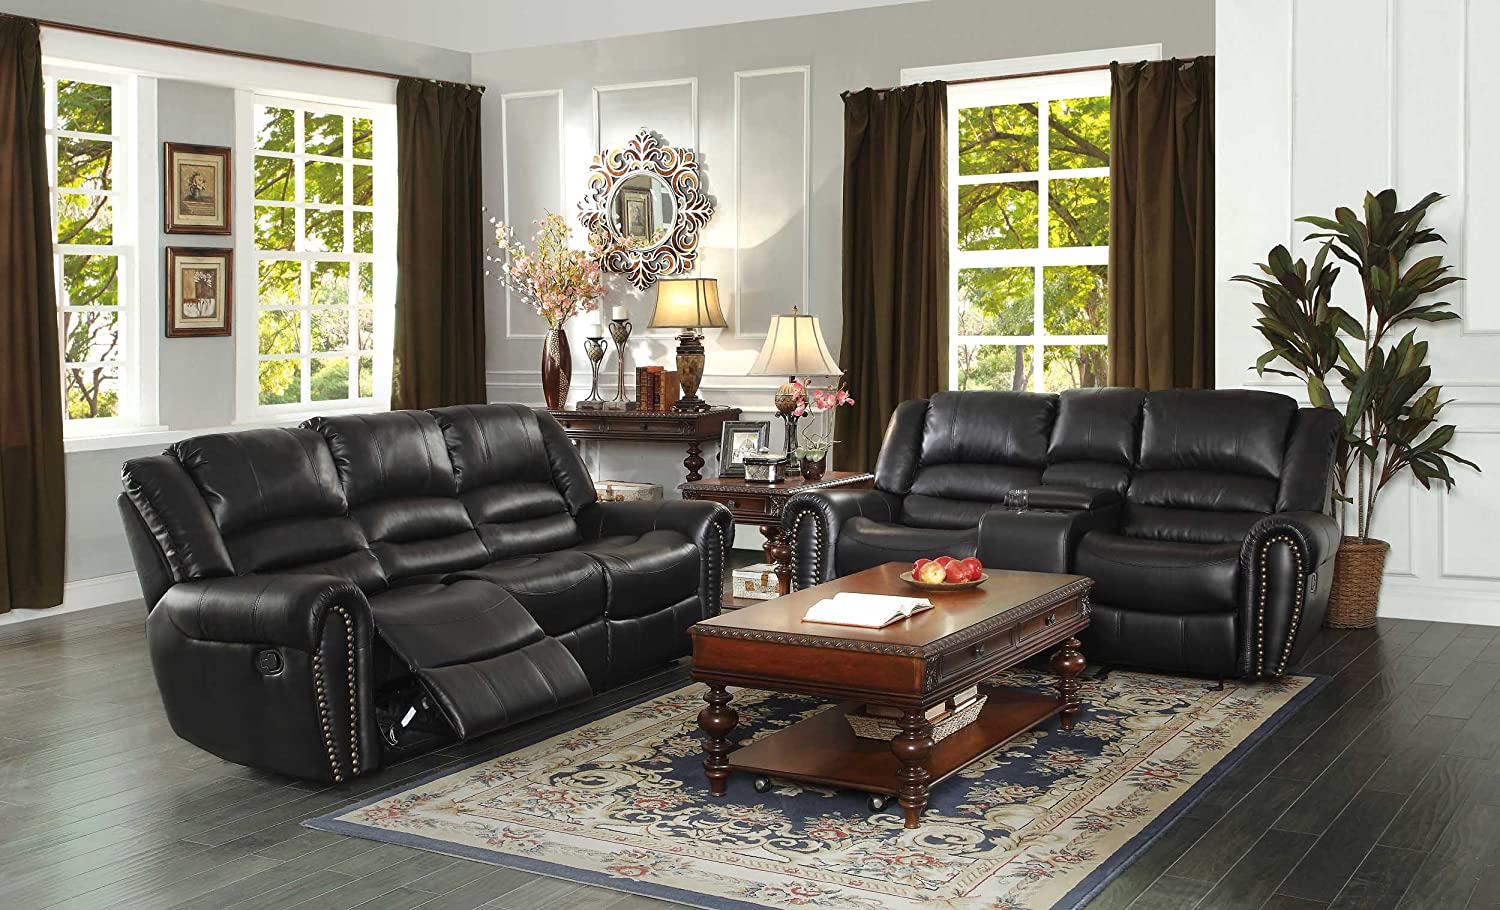 Best Recliner Reviews and Buying Guide 4